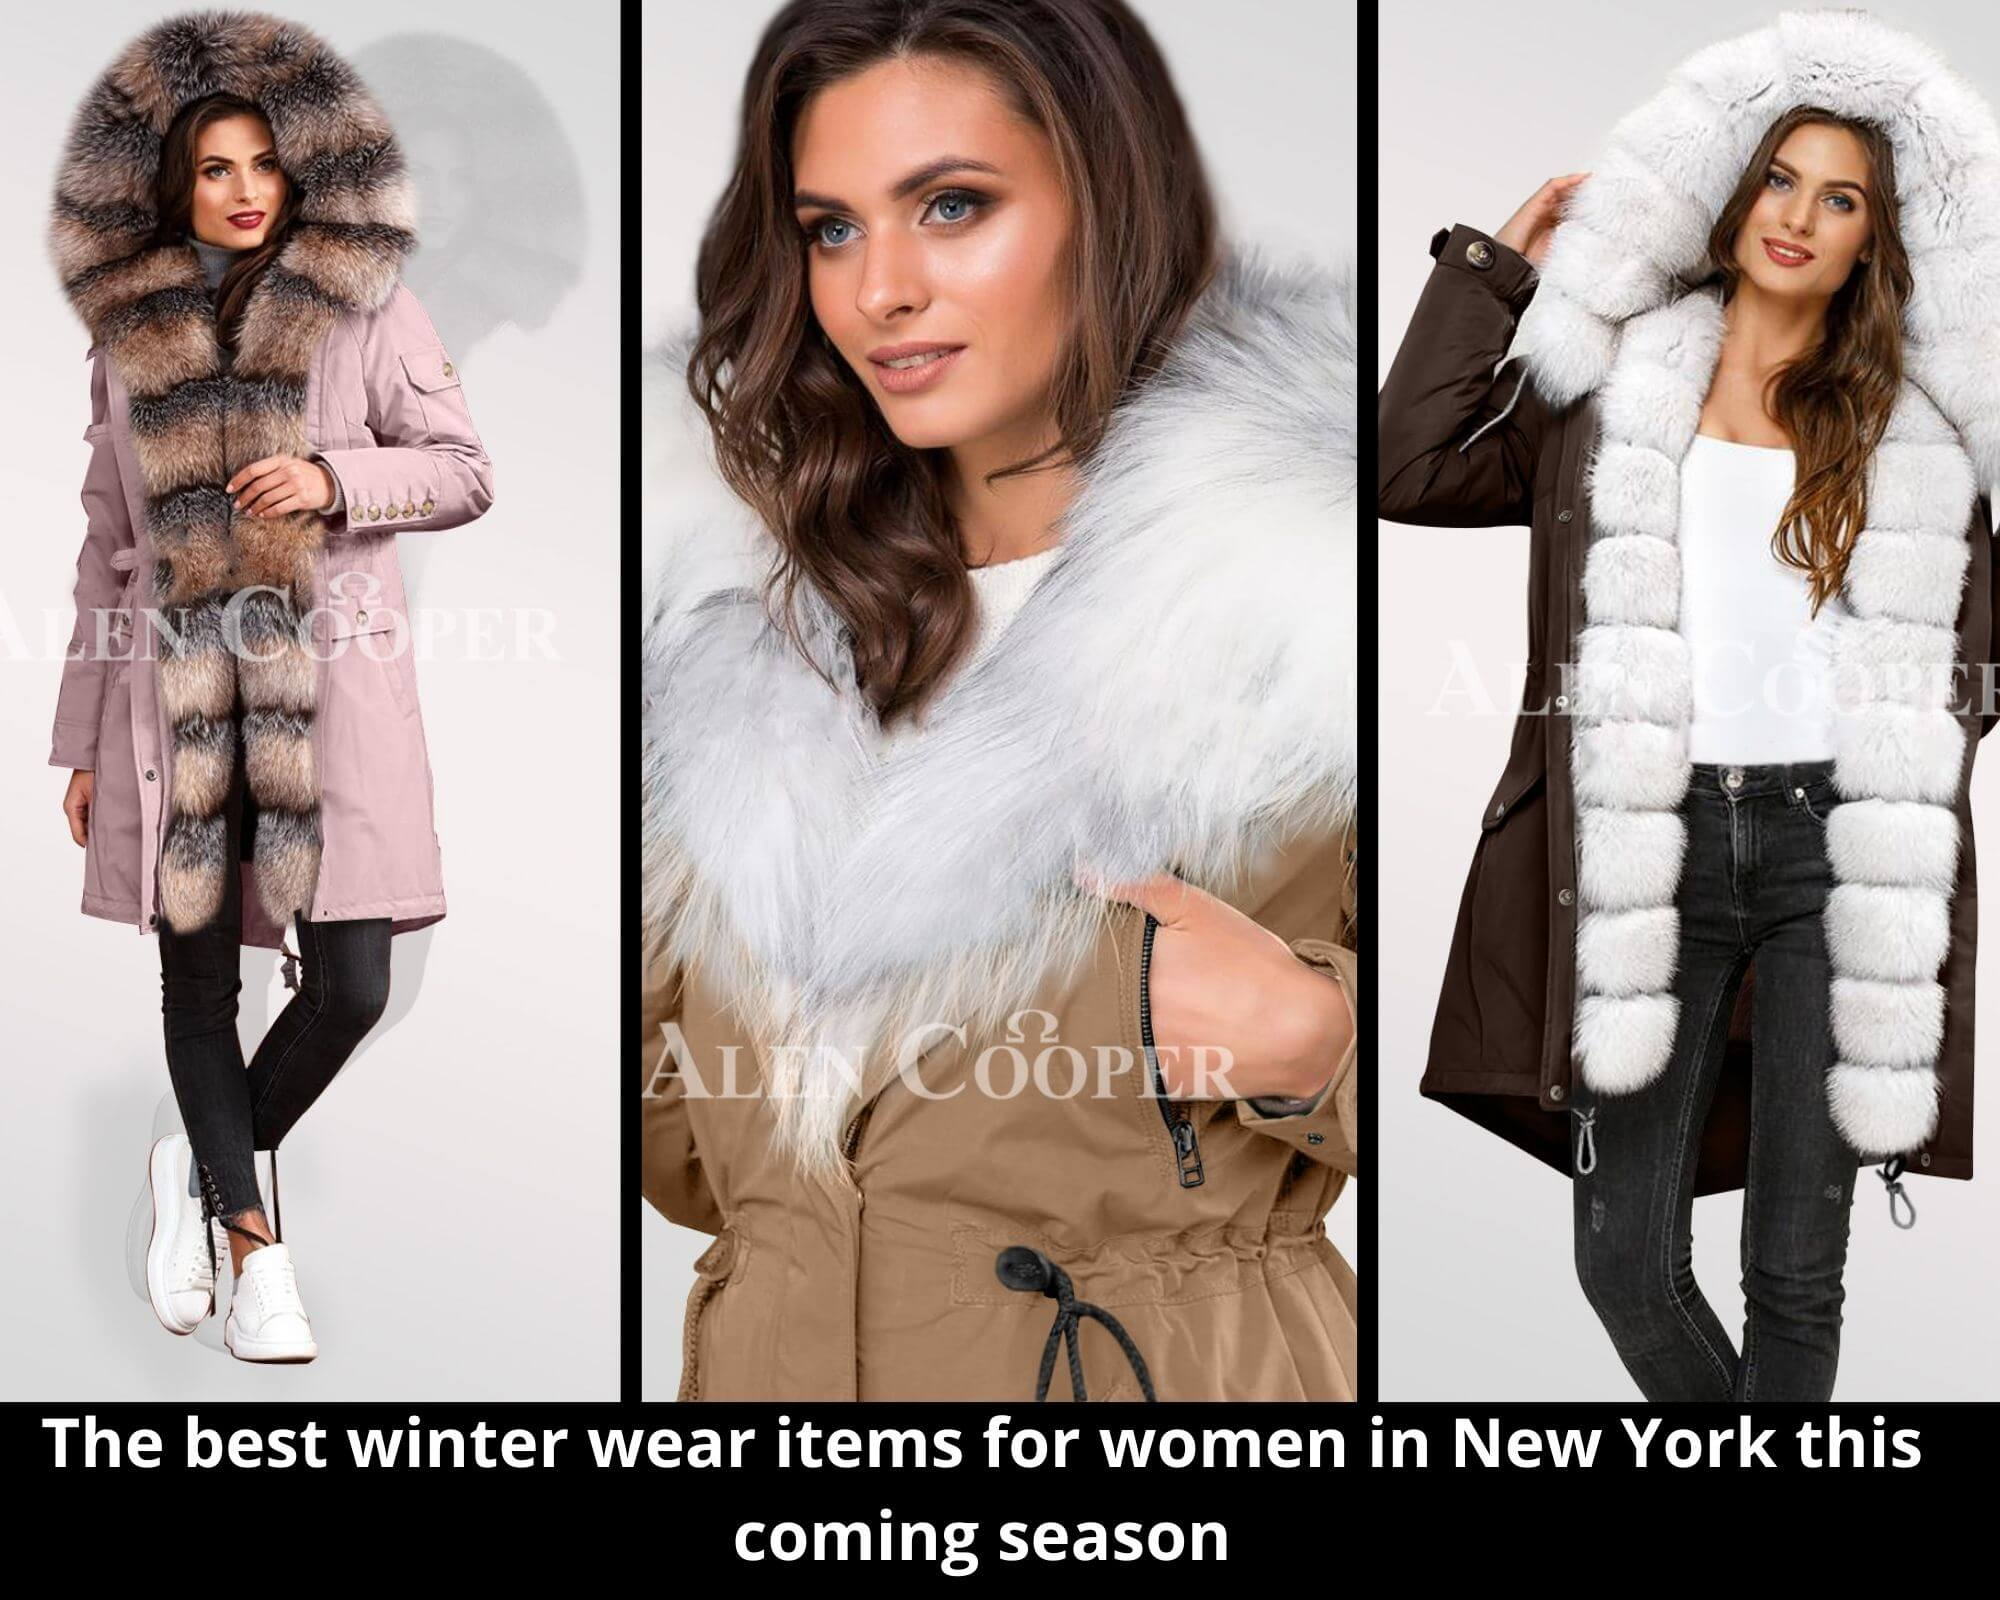 THE BEST WINTER WEAR ITEMS FOR WOMEN IN NEW YORK THIS COMING SEASON